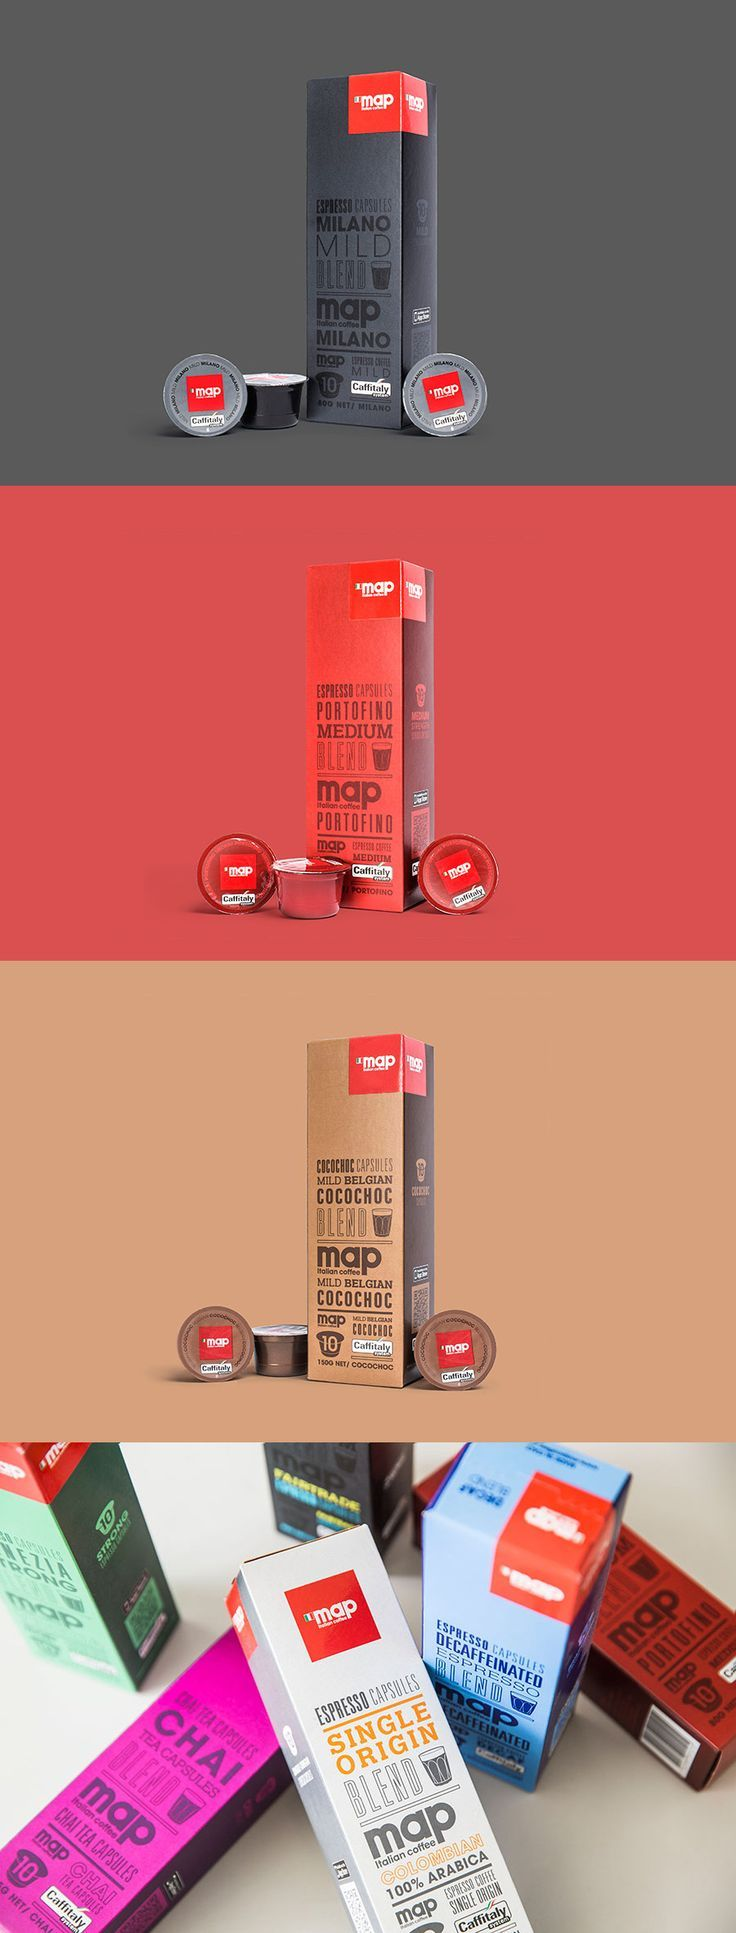 Map Coffee Capsule Packaging by Can I Play